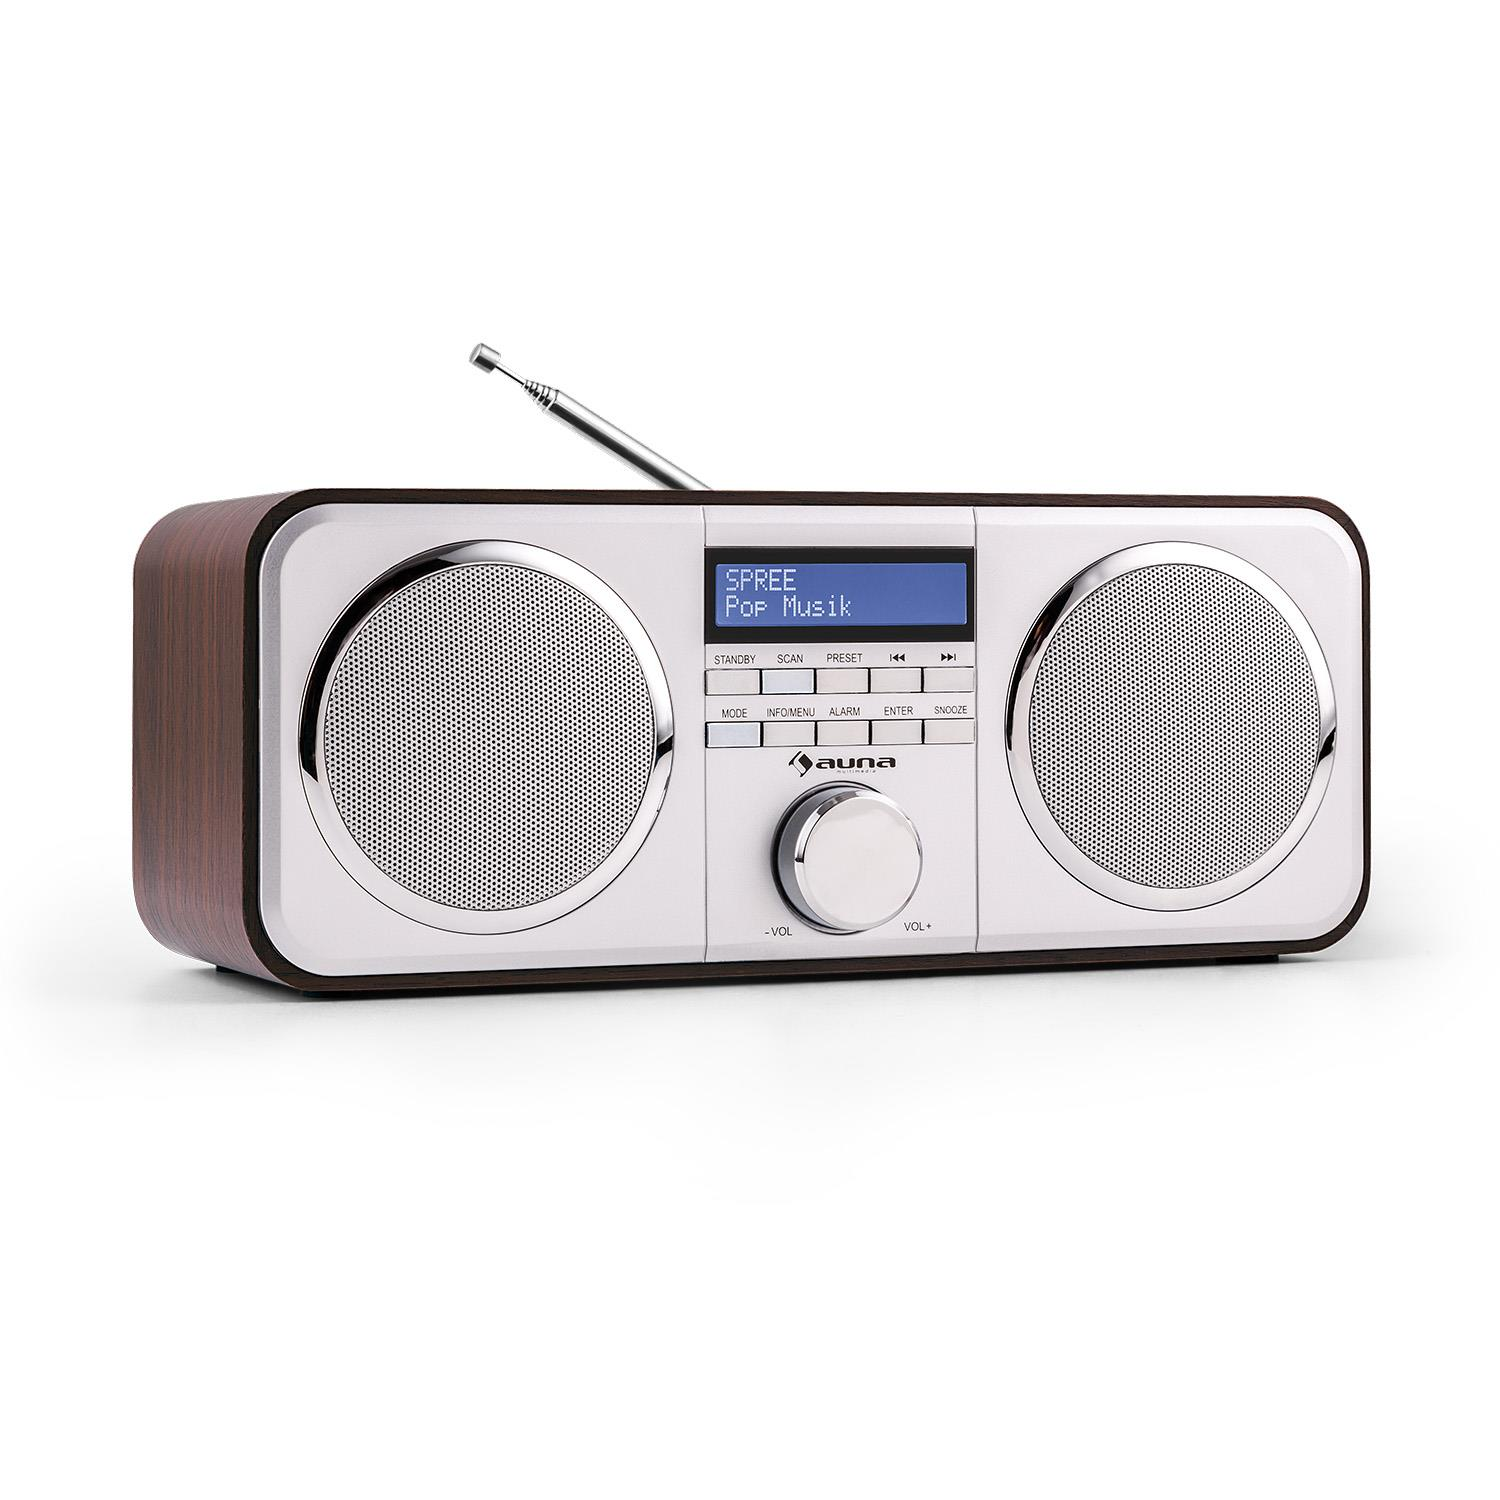 A professional rackmount fm radio tuner with an lcd screen for monitoring your radio station output